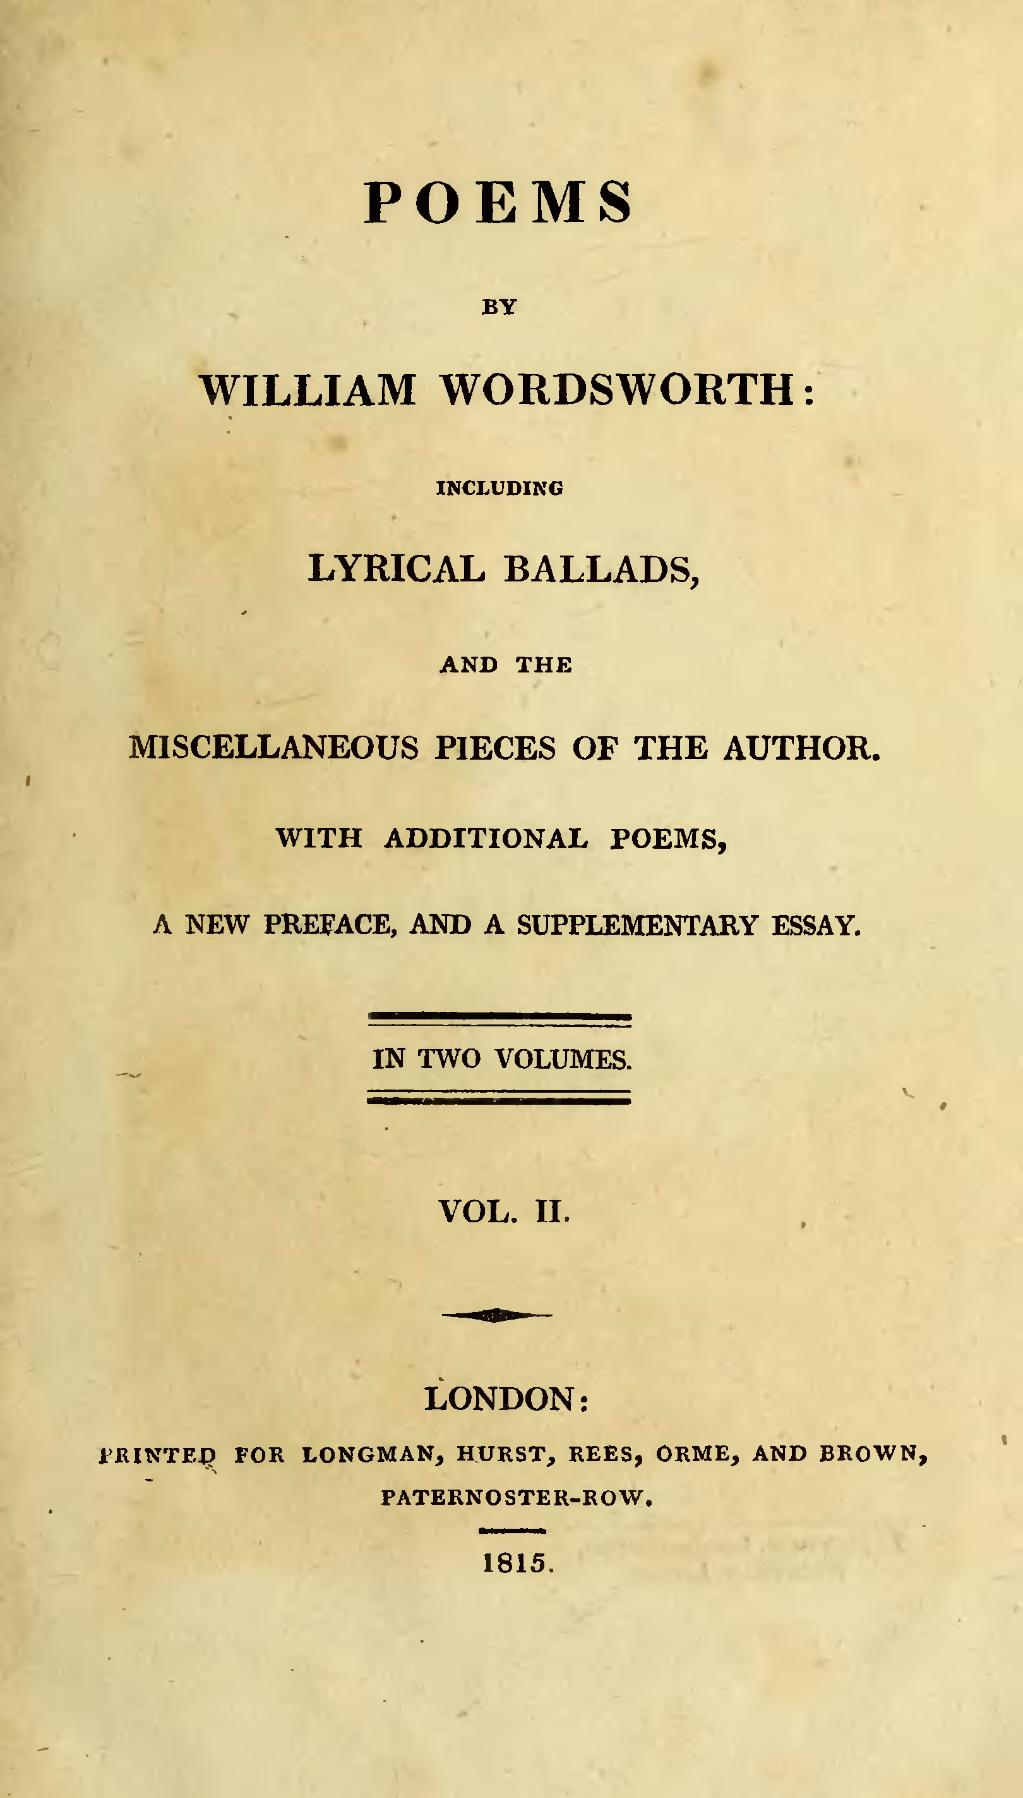 mysticism in wordsworths poetry english literature essay History of english literature (9) homer (2) indian literature (17) indian poetry in english (22)  wordsworth's defination of poet and poetry as expressed in his preface lyrical ballads  thus wordsworth elaborately describes the function of poetry and of the poet in his critical essay preface to lyrical ballads in both the cases he.